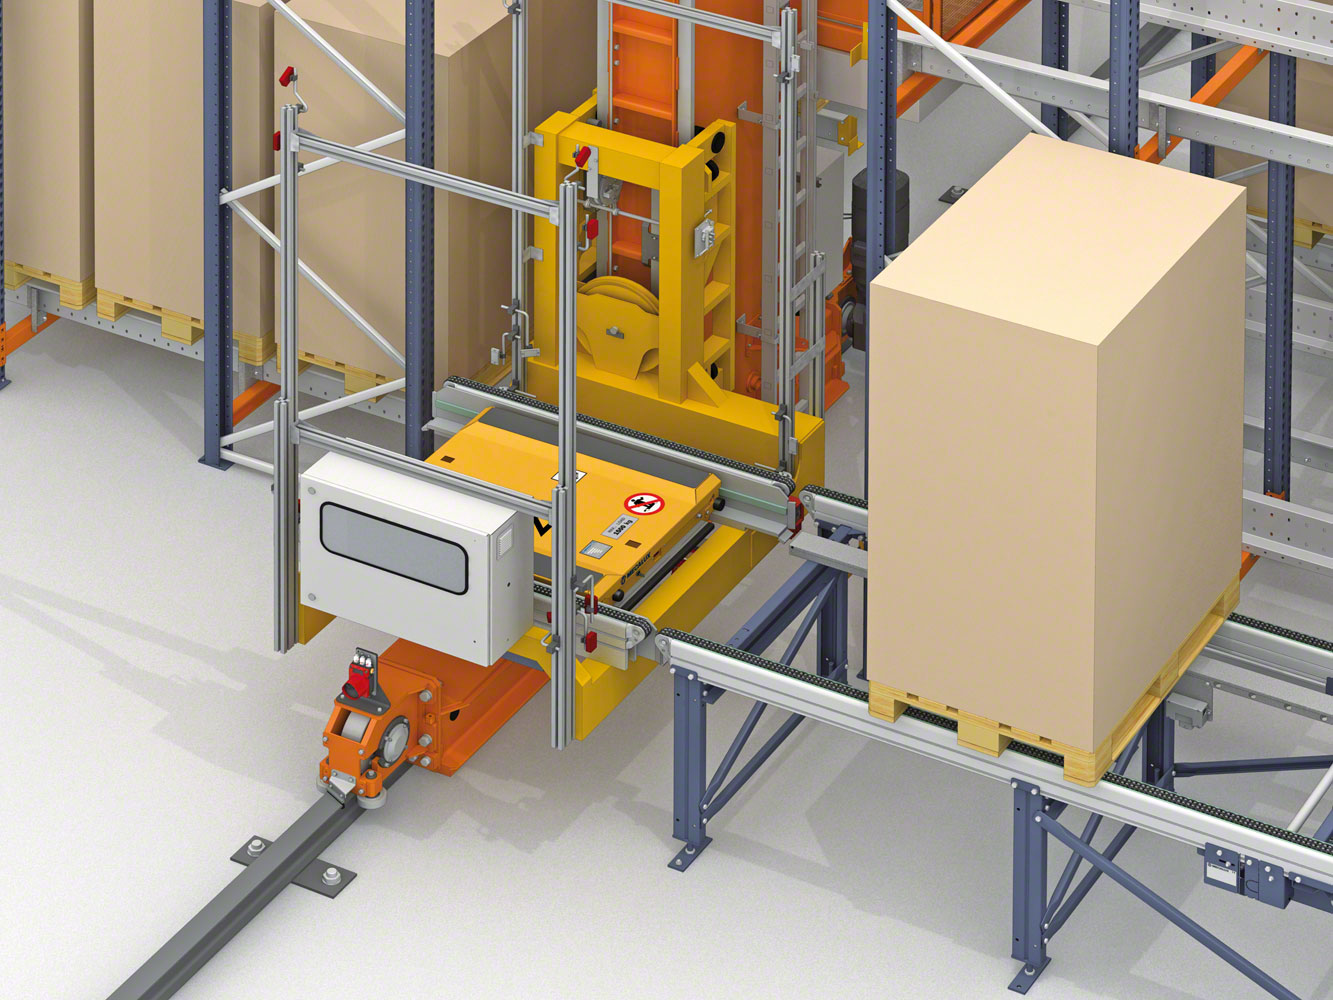 Mecalux will equip two Lanxess warehouses in Germany with Pallet Shuttle system